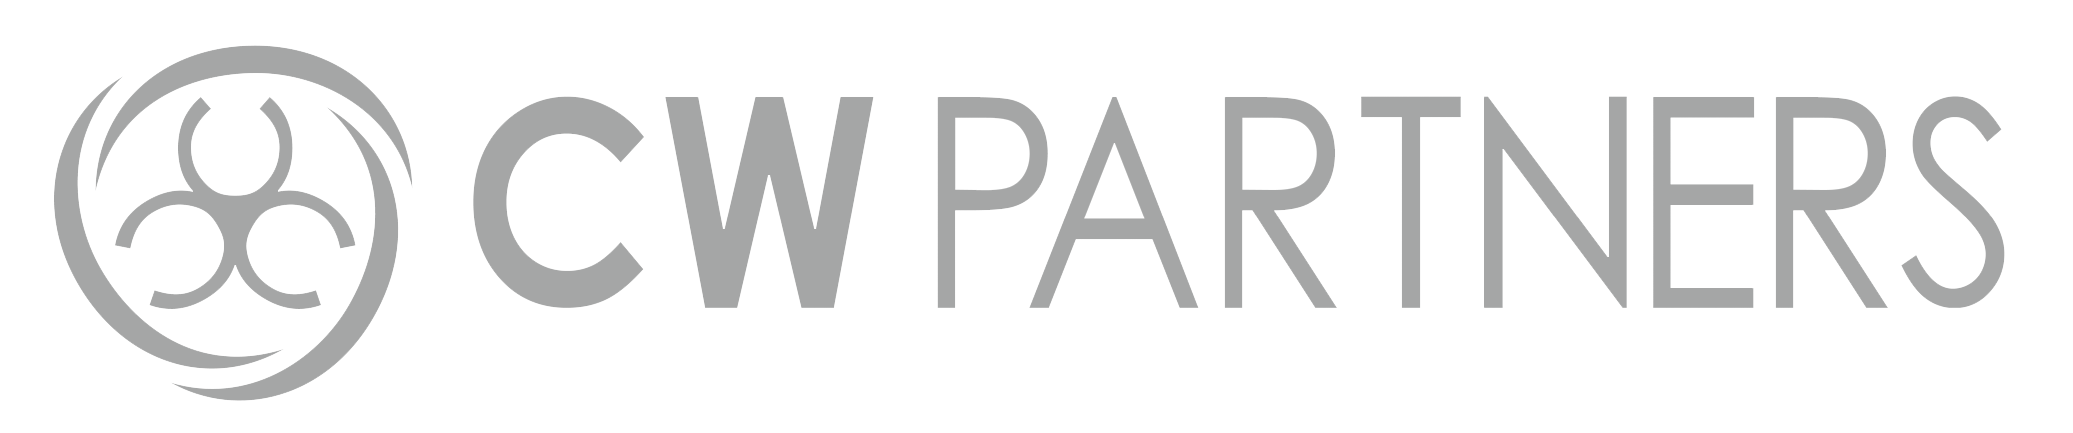 cwpartners